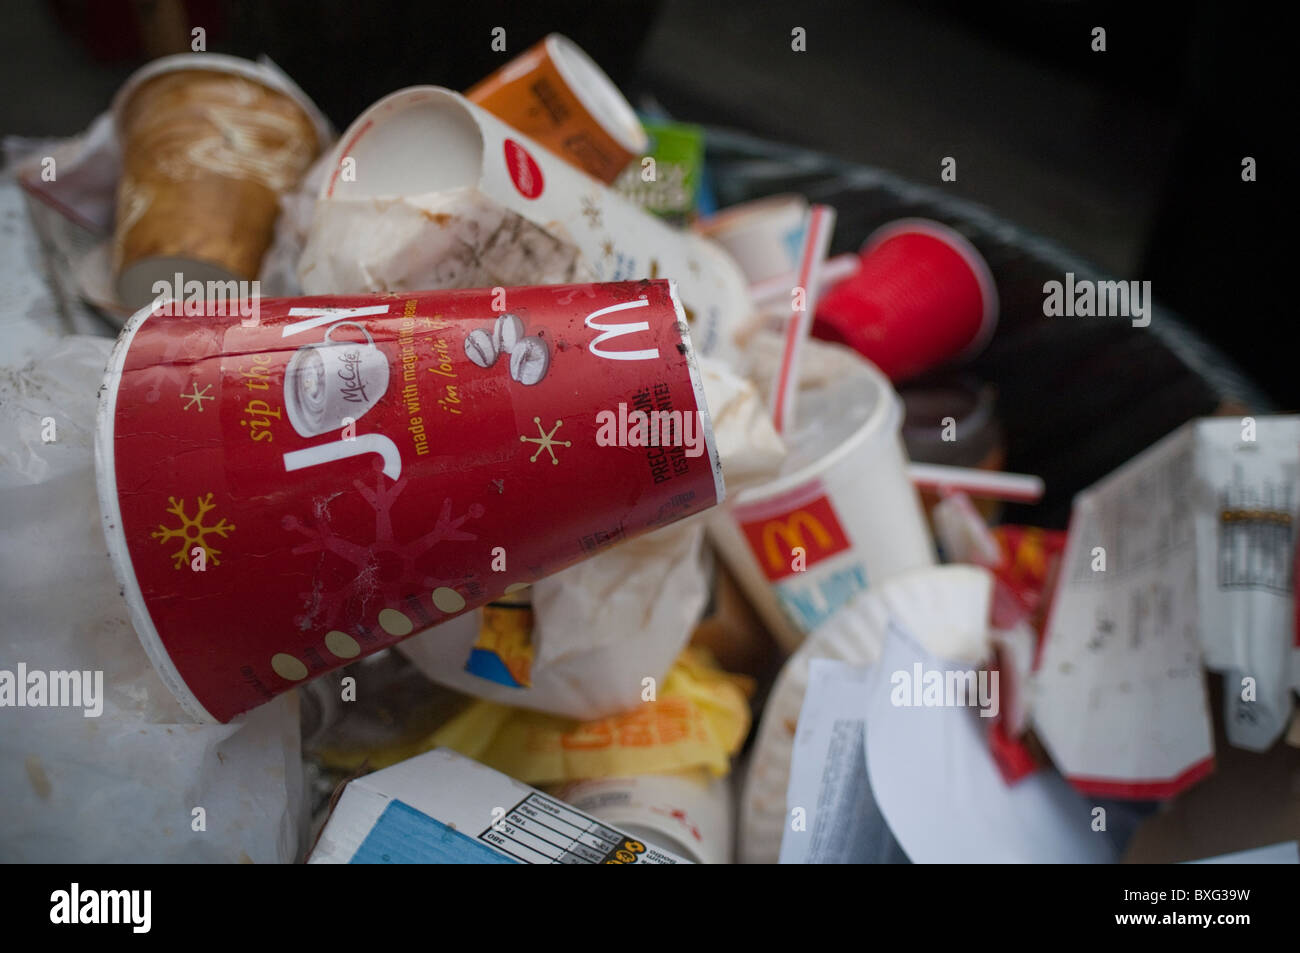 Mcdonalds Rubbish Stock Photos Mcdonalds Rubbish Stock